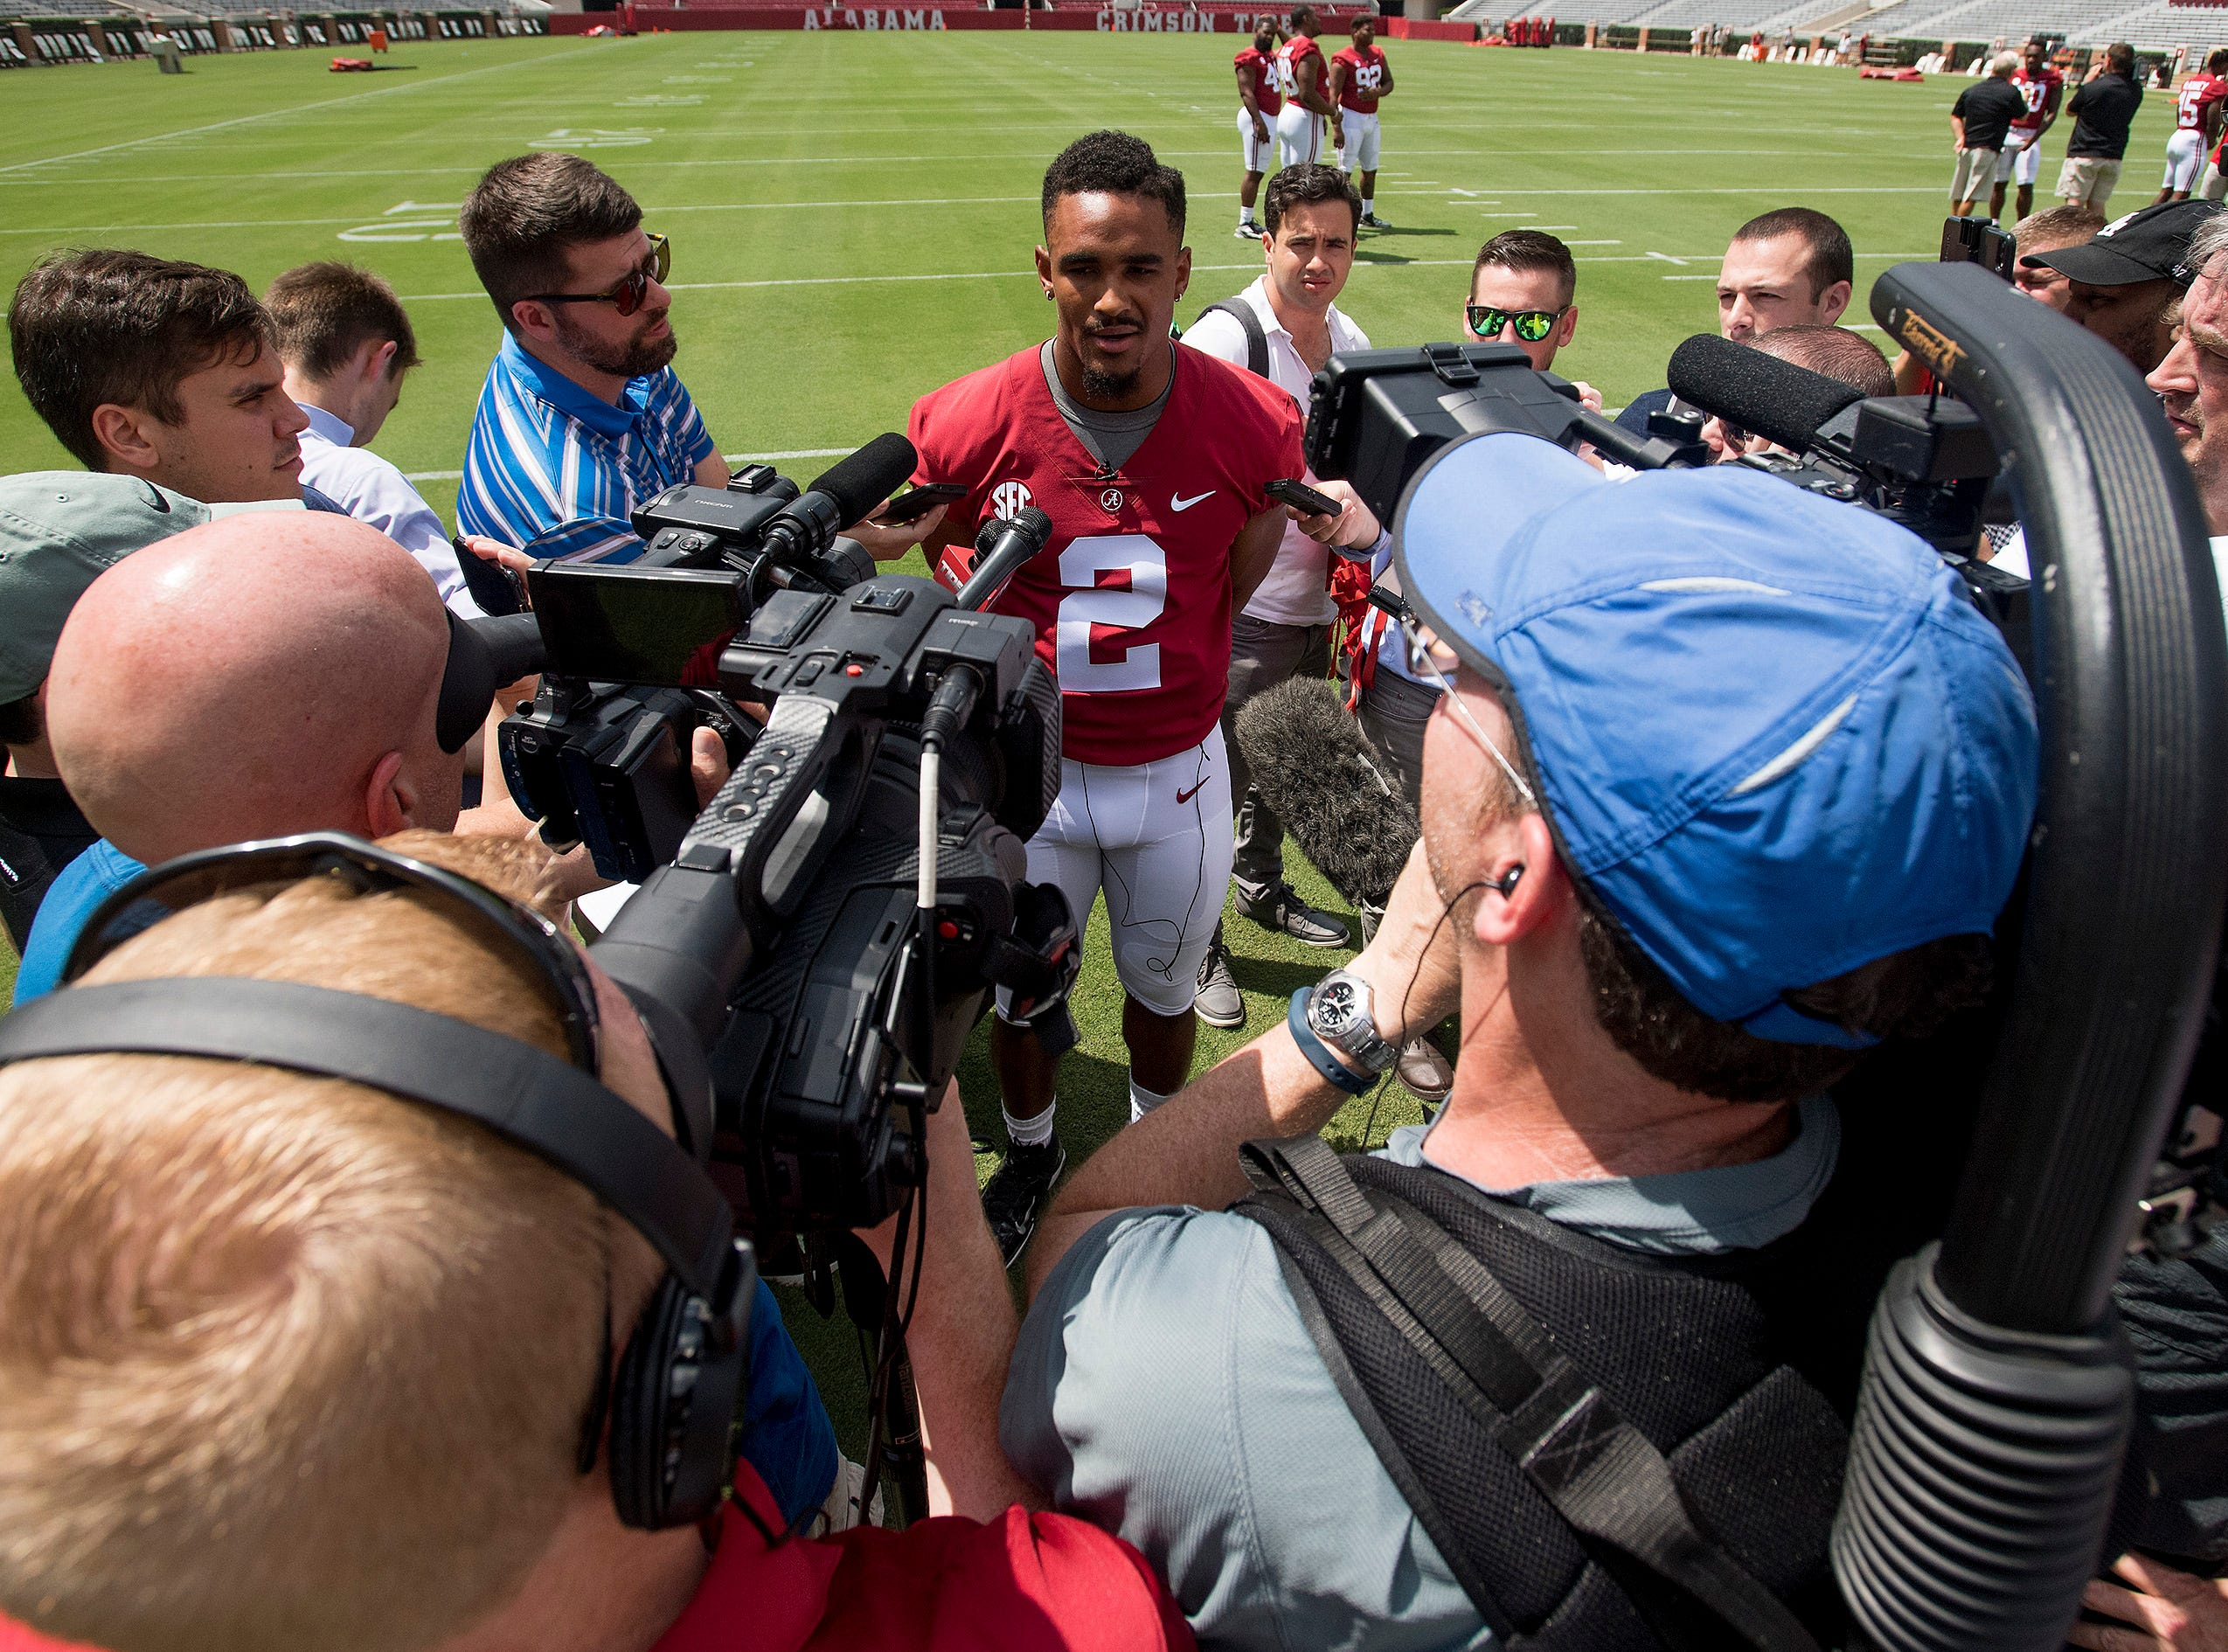 University of Alabama quarterback Jalen Hurts talks with the media before fan day on the Alabama campus in Tuscaloosa, Ala. on Saturday August 4, 2018. (Mickey Welsh / Advertiser)